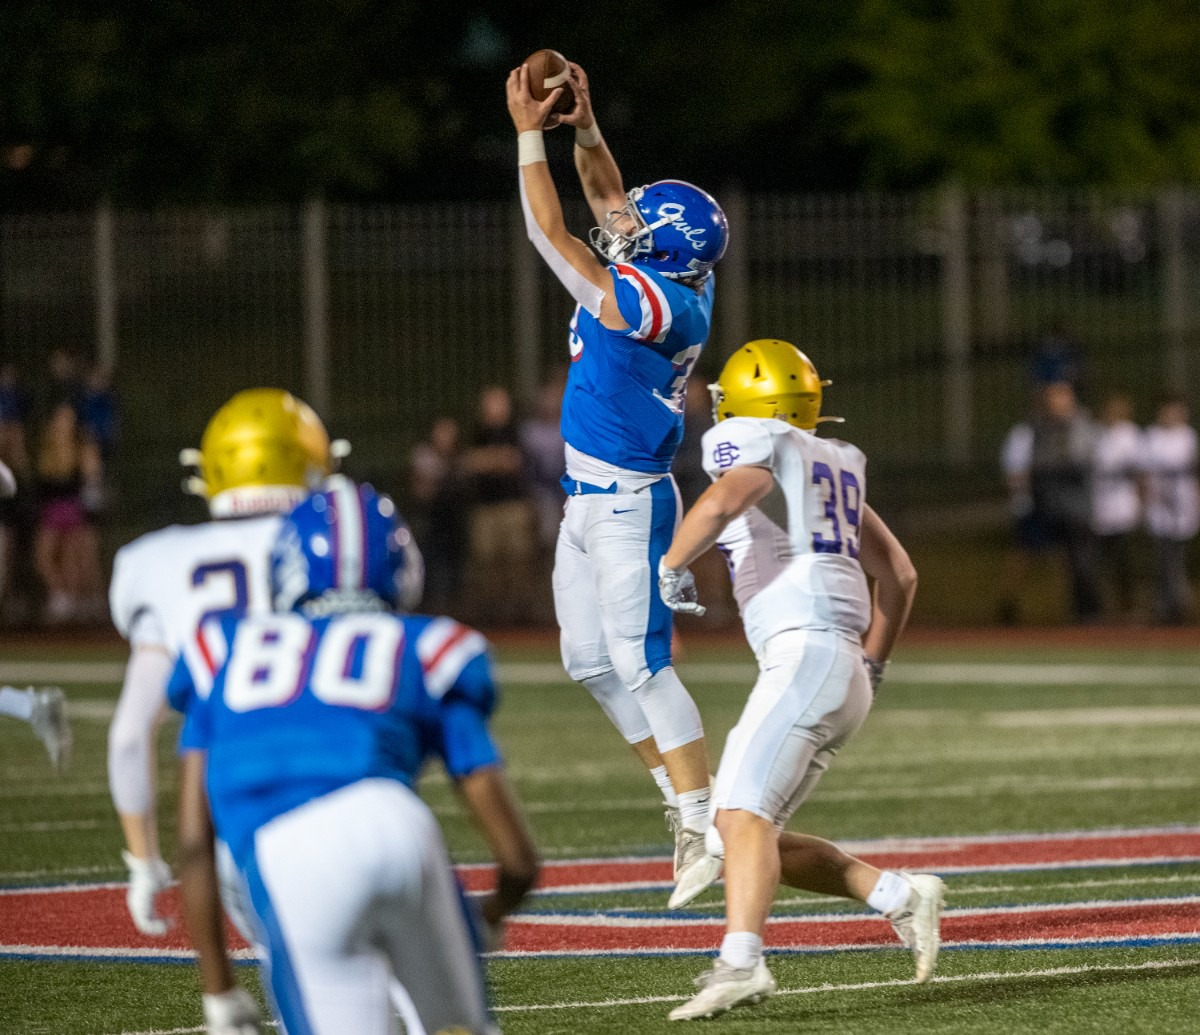 <strong>MUS linebacker Stryker Aitken pulls down an interception intended for CBHS wide receiver Cole Hungate on Oct. 15. The game was delayed for an hour and 15 minutes until a fast-moving storm passed the area.</strong> (Greg Campbell/Special to The Daily Memphian)